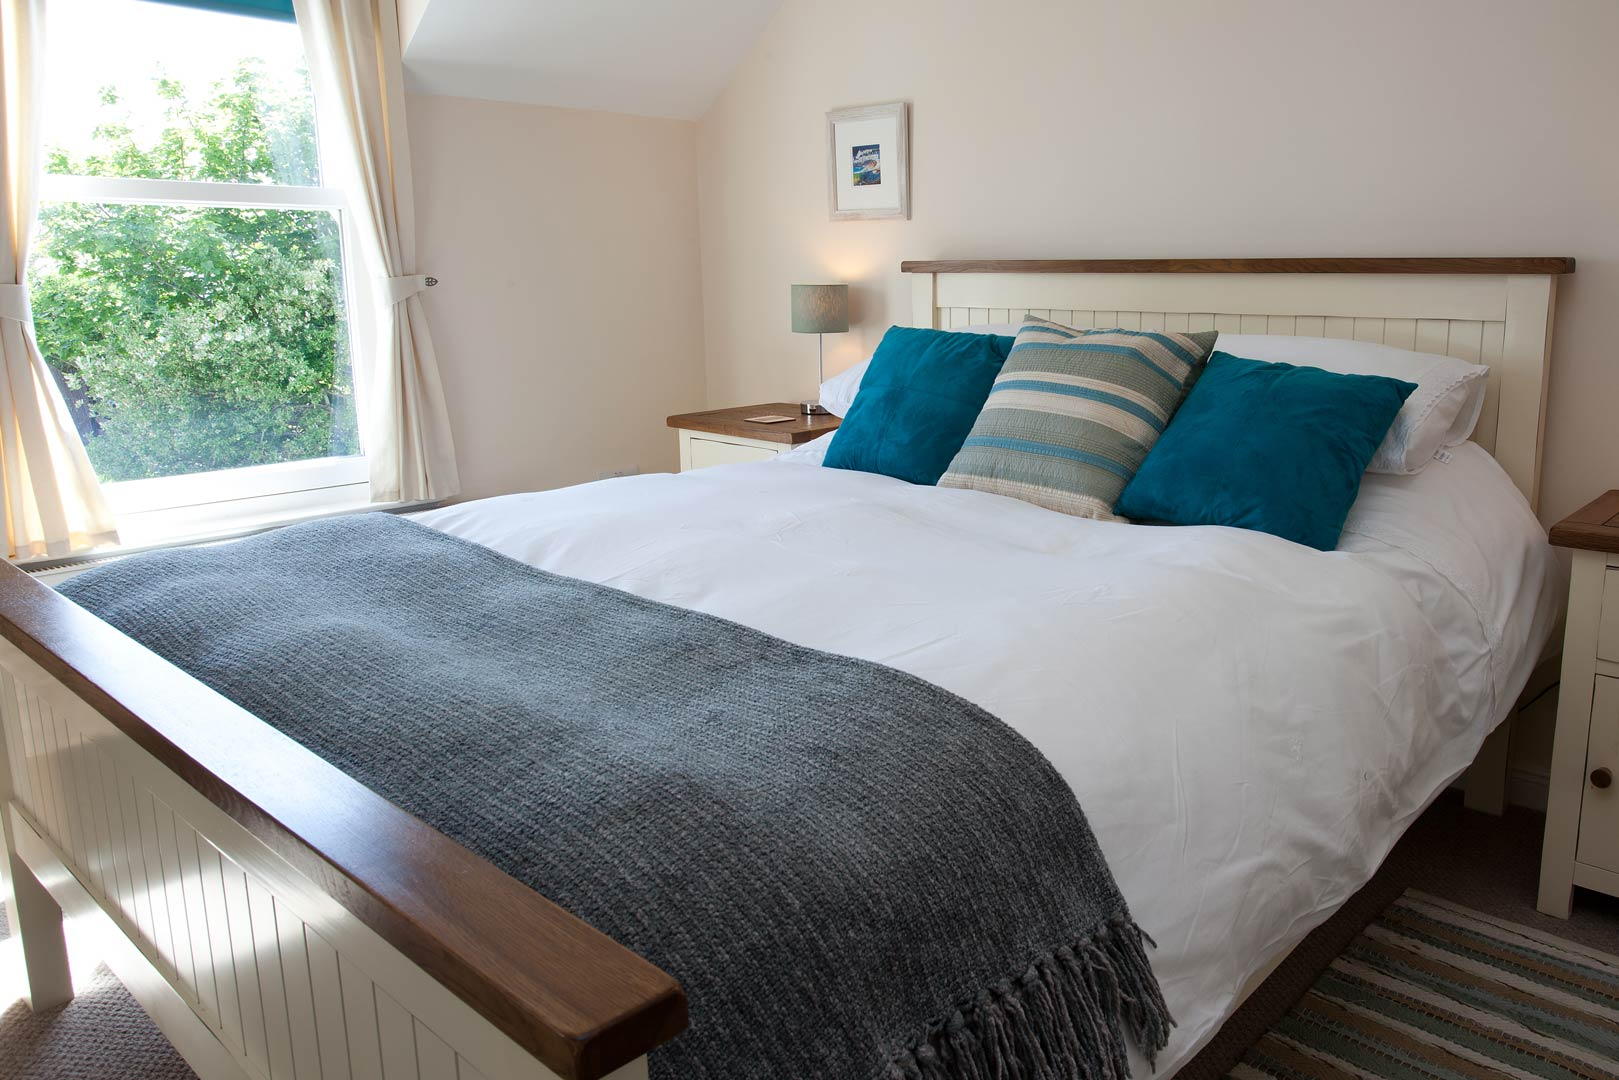 Islay holiday cottages: each cottage has two double bedrooms